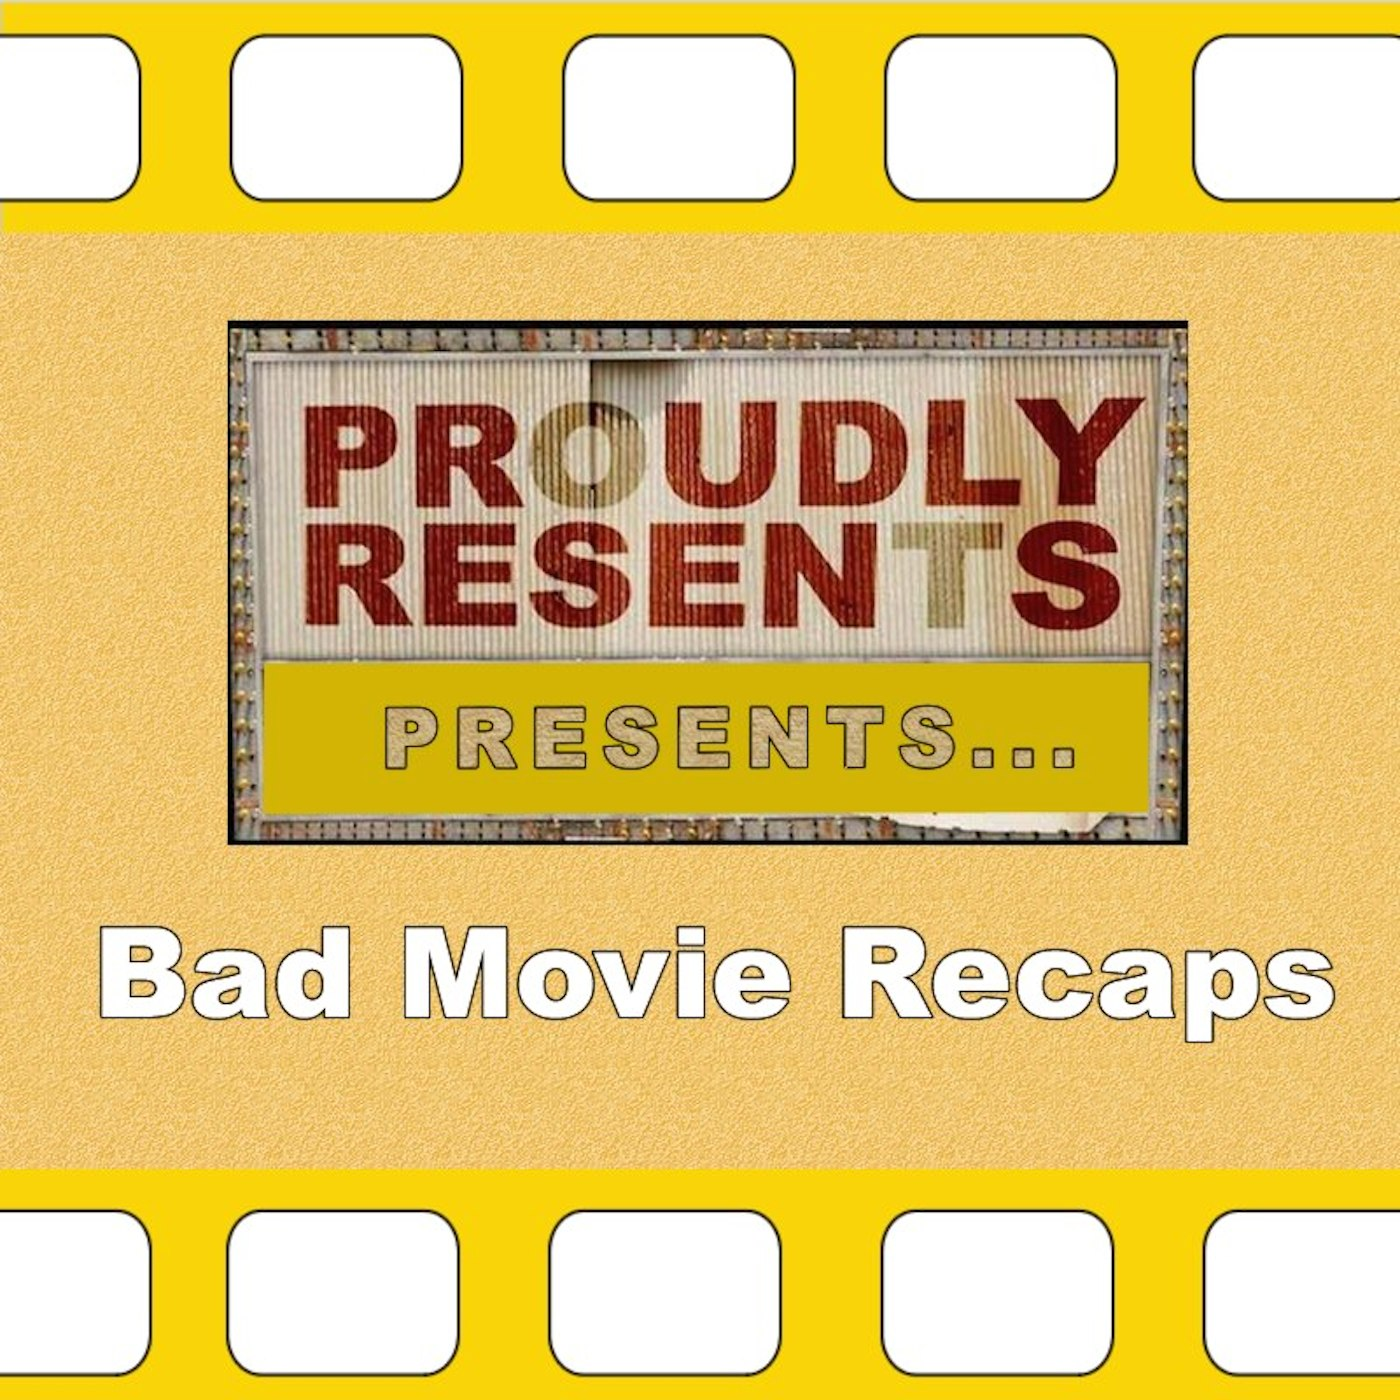 Proudly Resents: Bad Movie Recaps